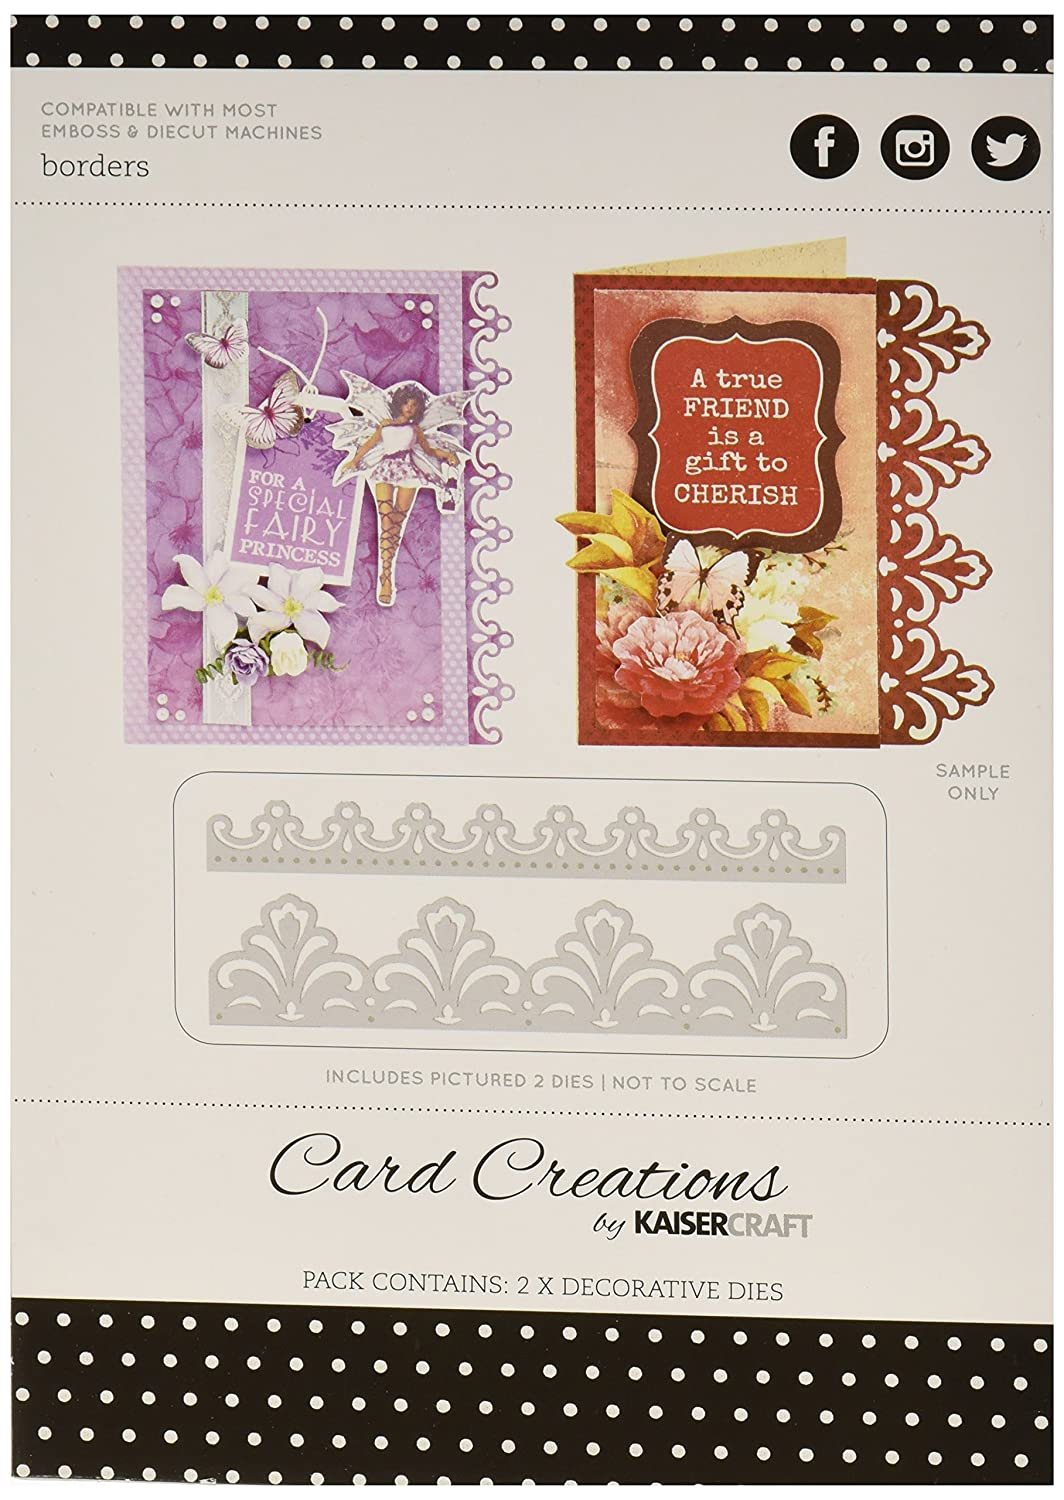 Kaisercraft Lace Edges Card Creations Dies, 6 by Kaisercraft B011Q1Q1DG